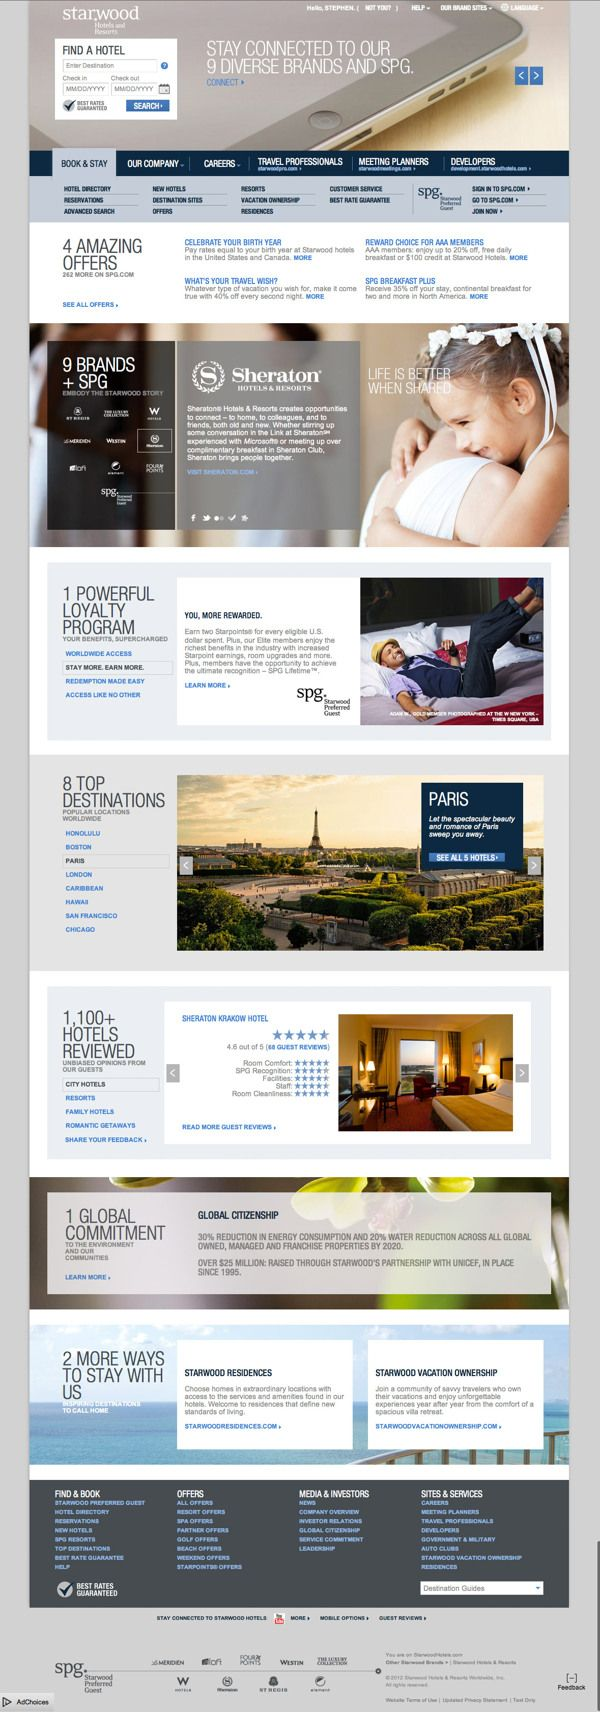 Starwood Hotels Resorts Corporate Site Design By Stephen Gates Via Behance Love The Navigation And Immediate Call To Action Form In Banner